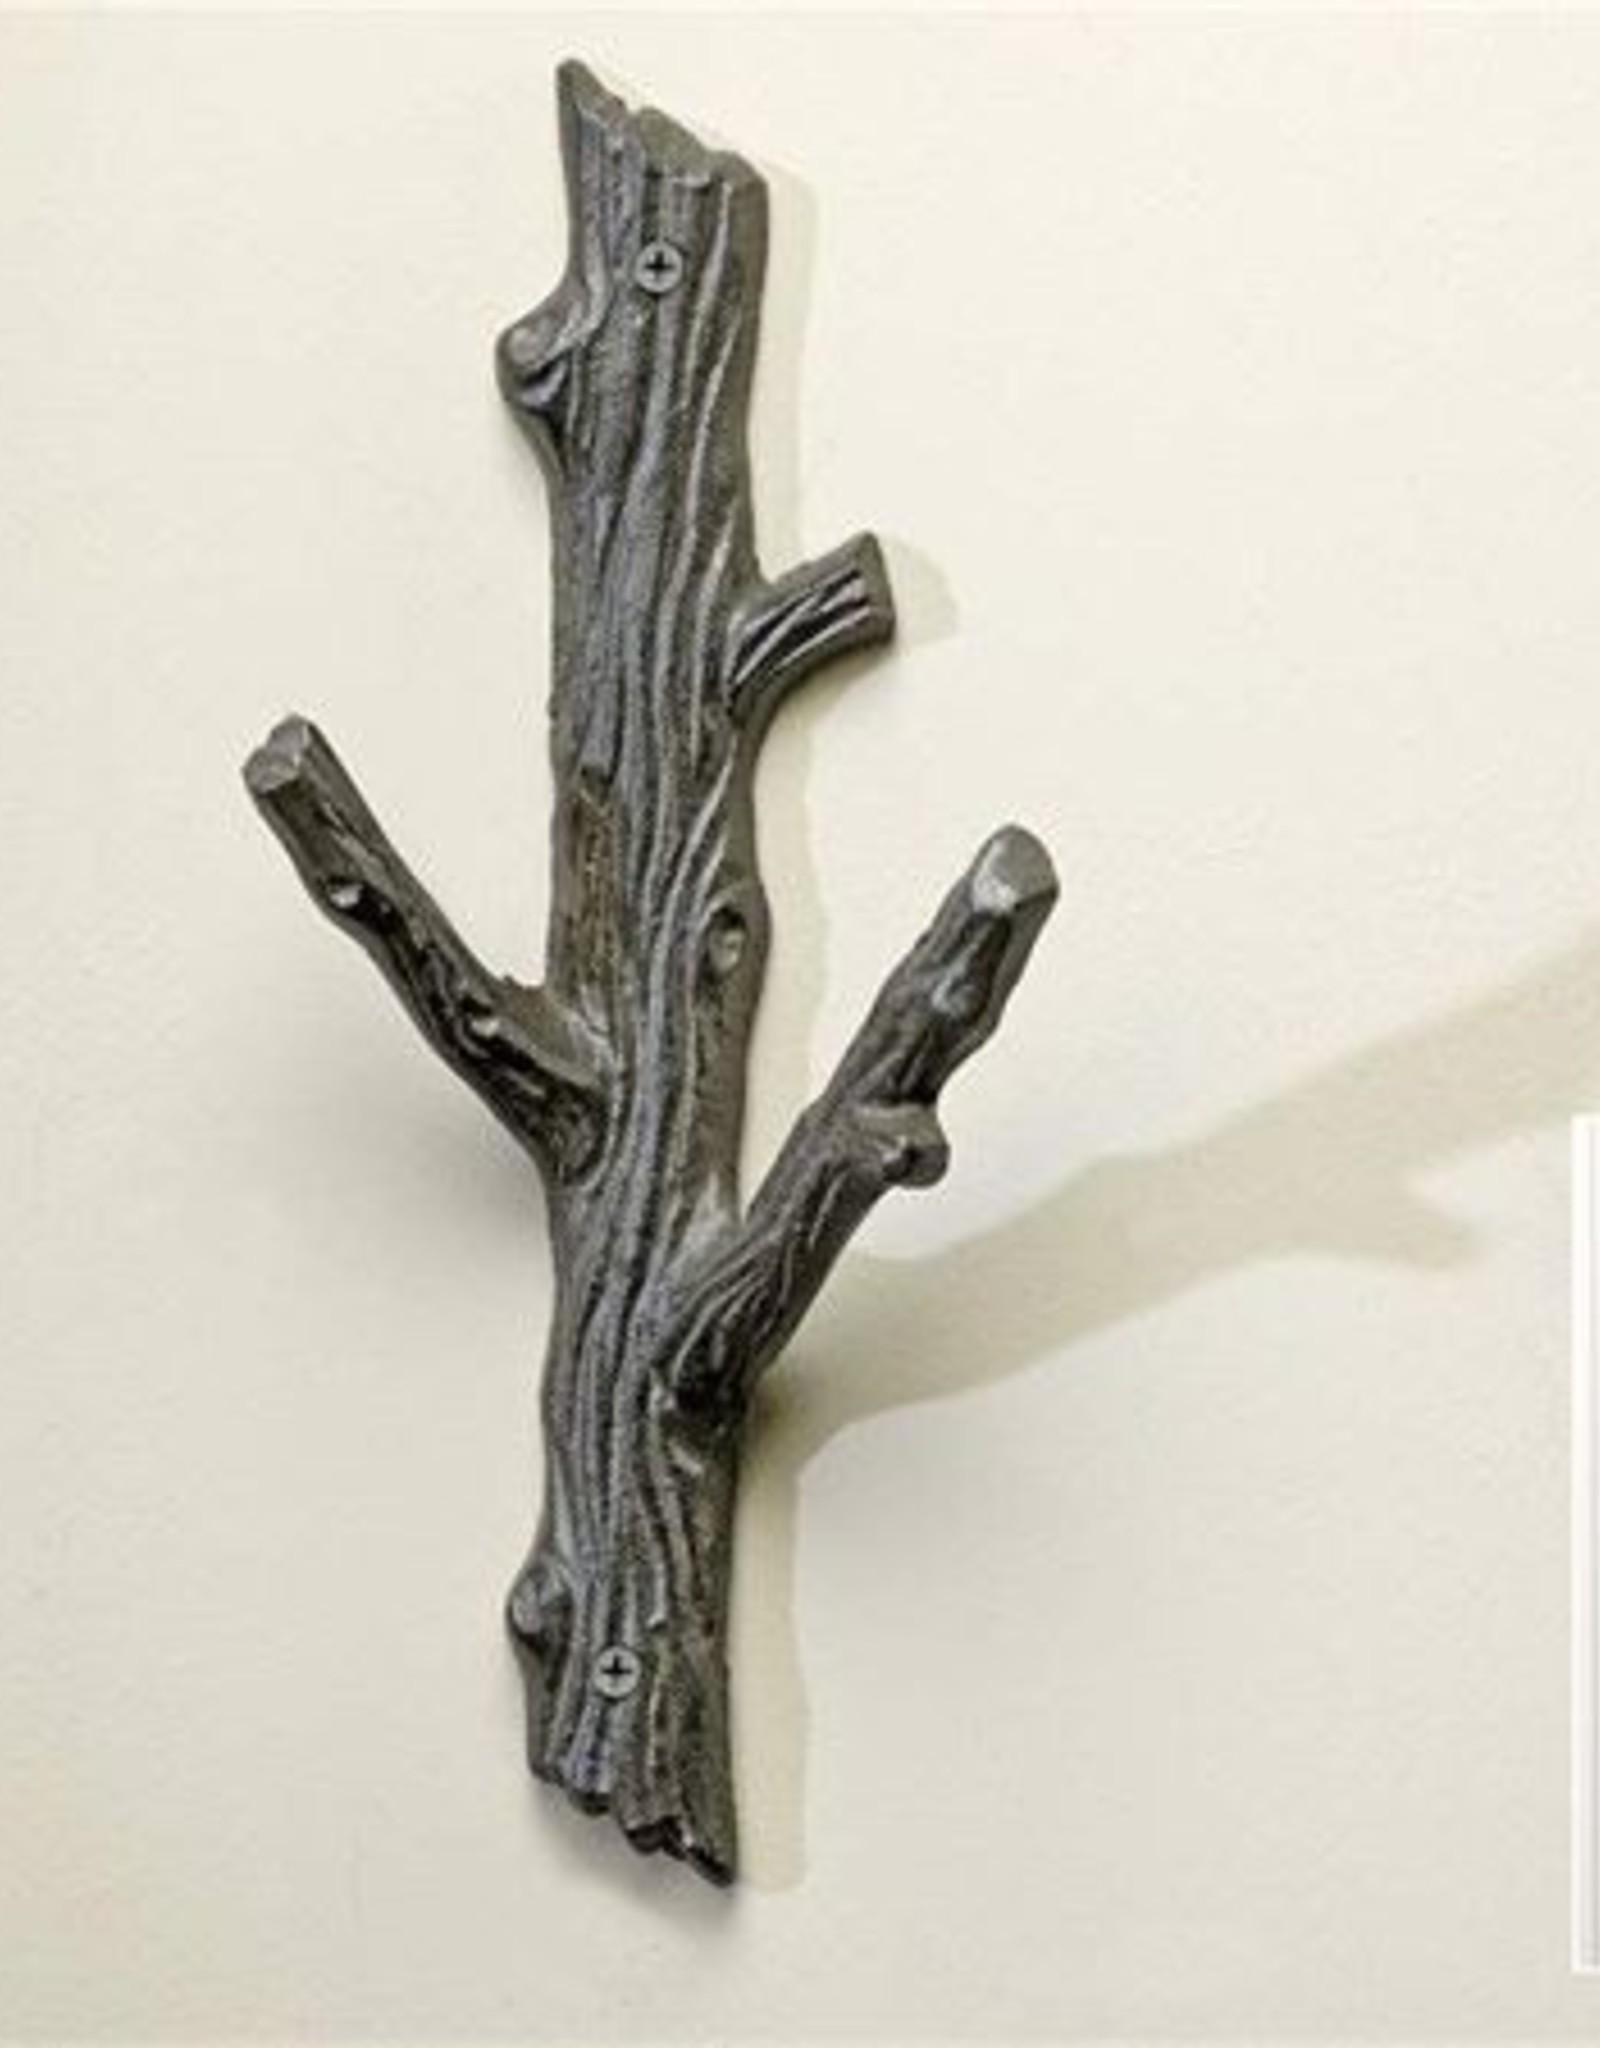 Wall Hook - Cast Iron Tree Branch - Large